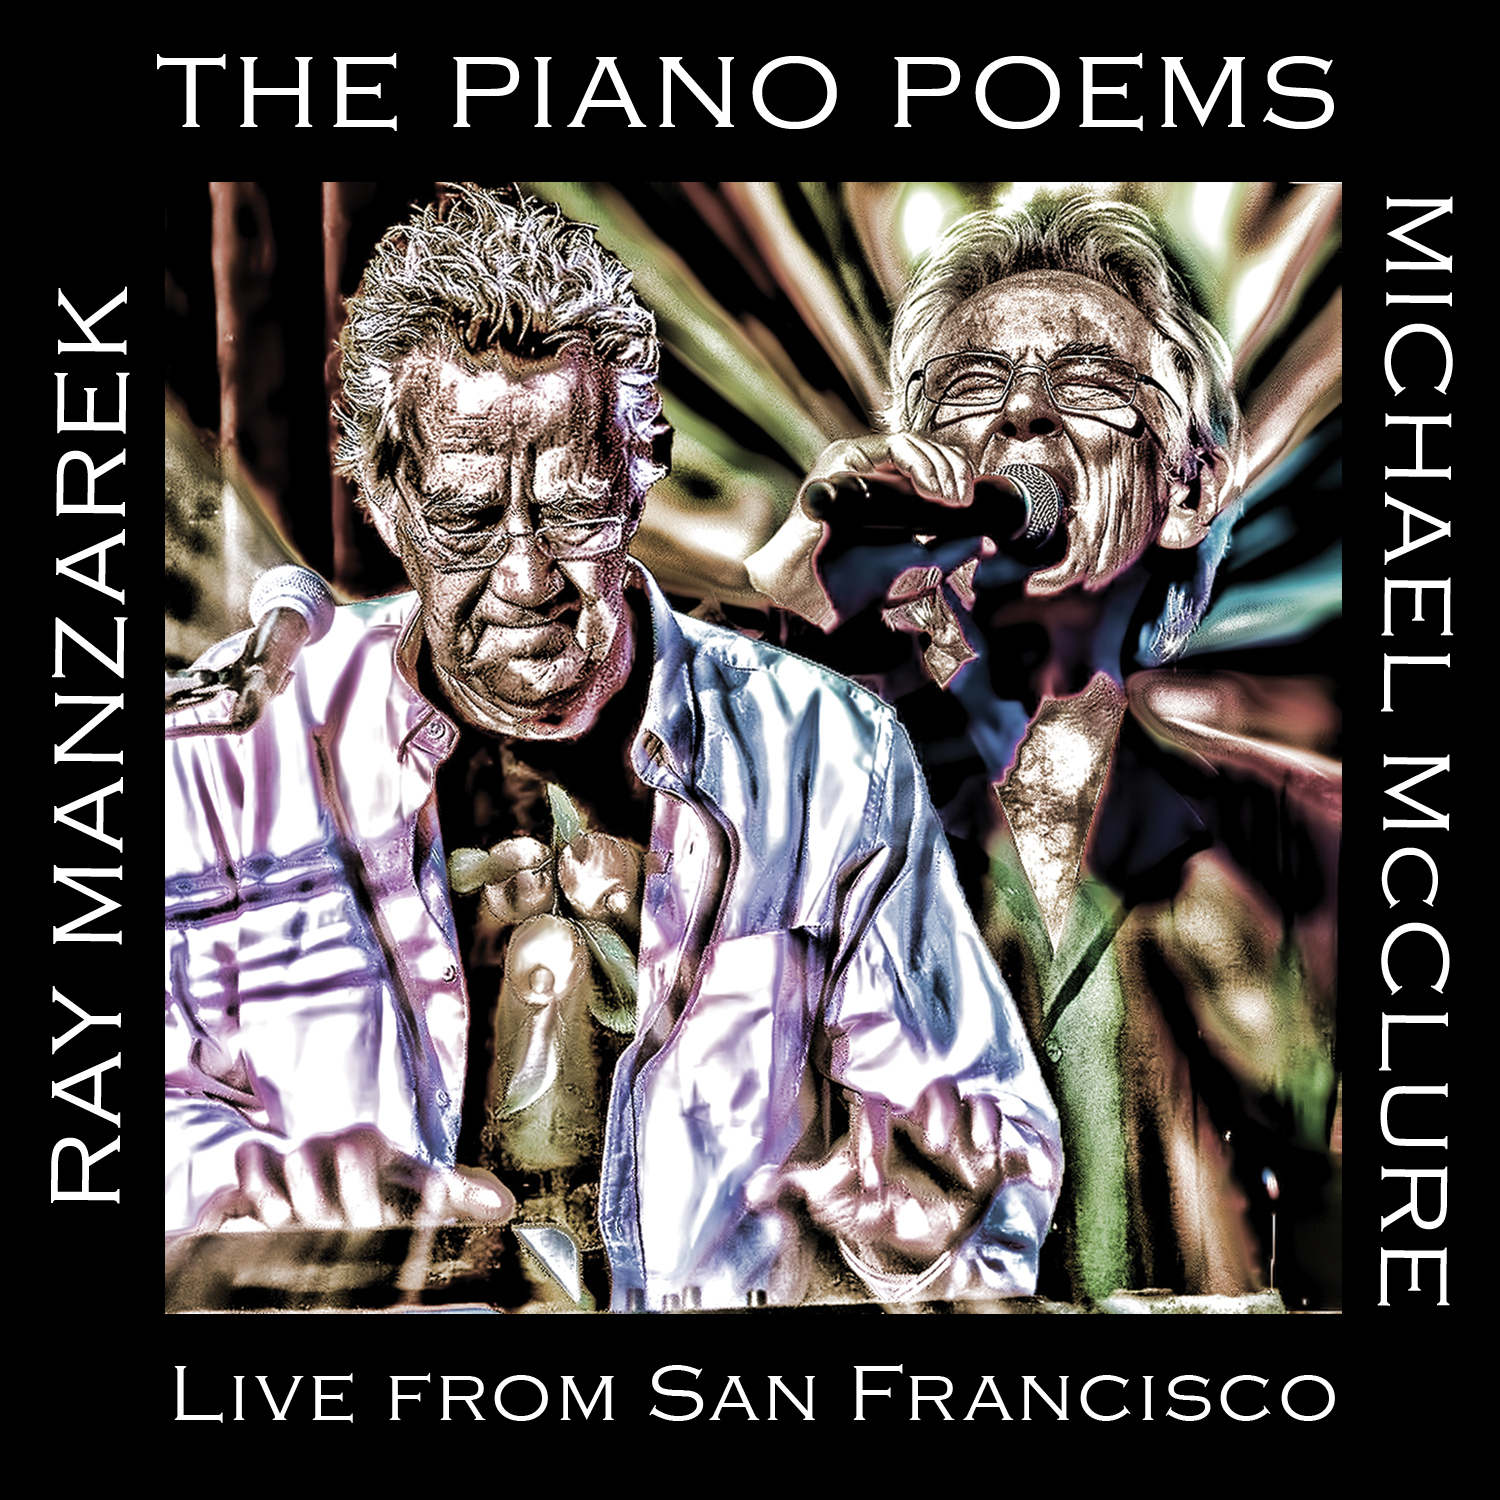 Ray Manzarek & Michael McClure - The Piano Poems: Live From San Francisco